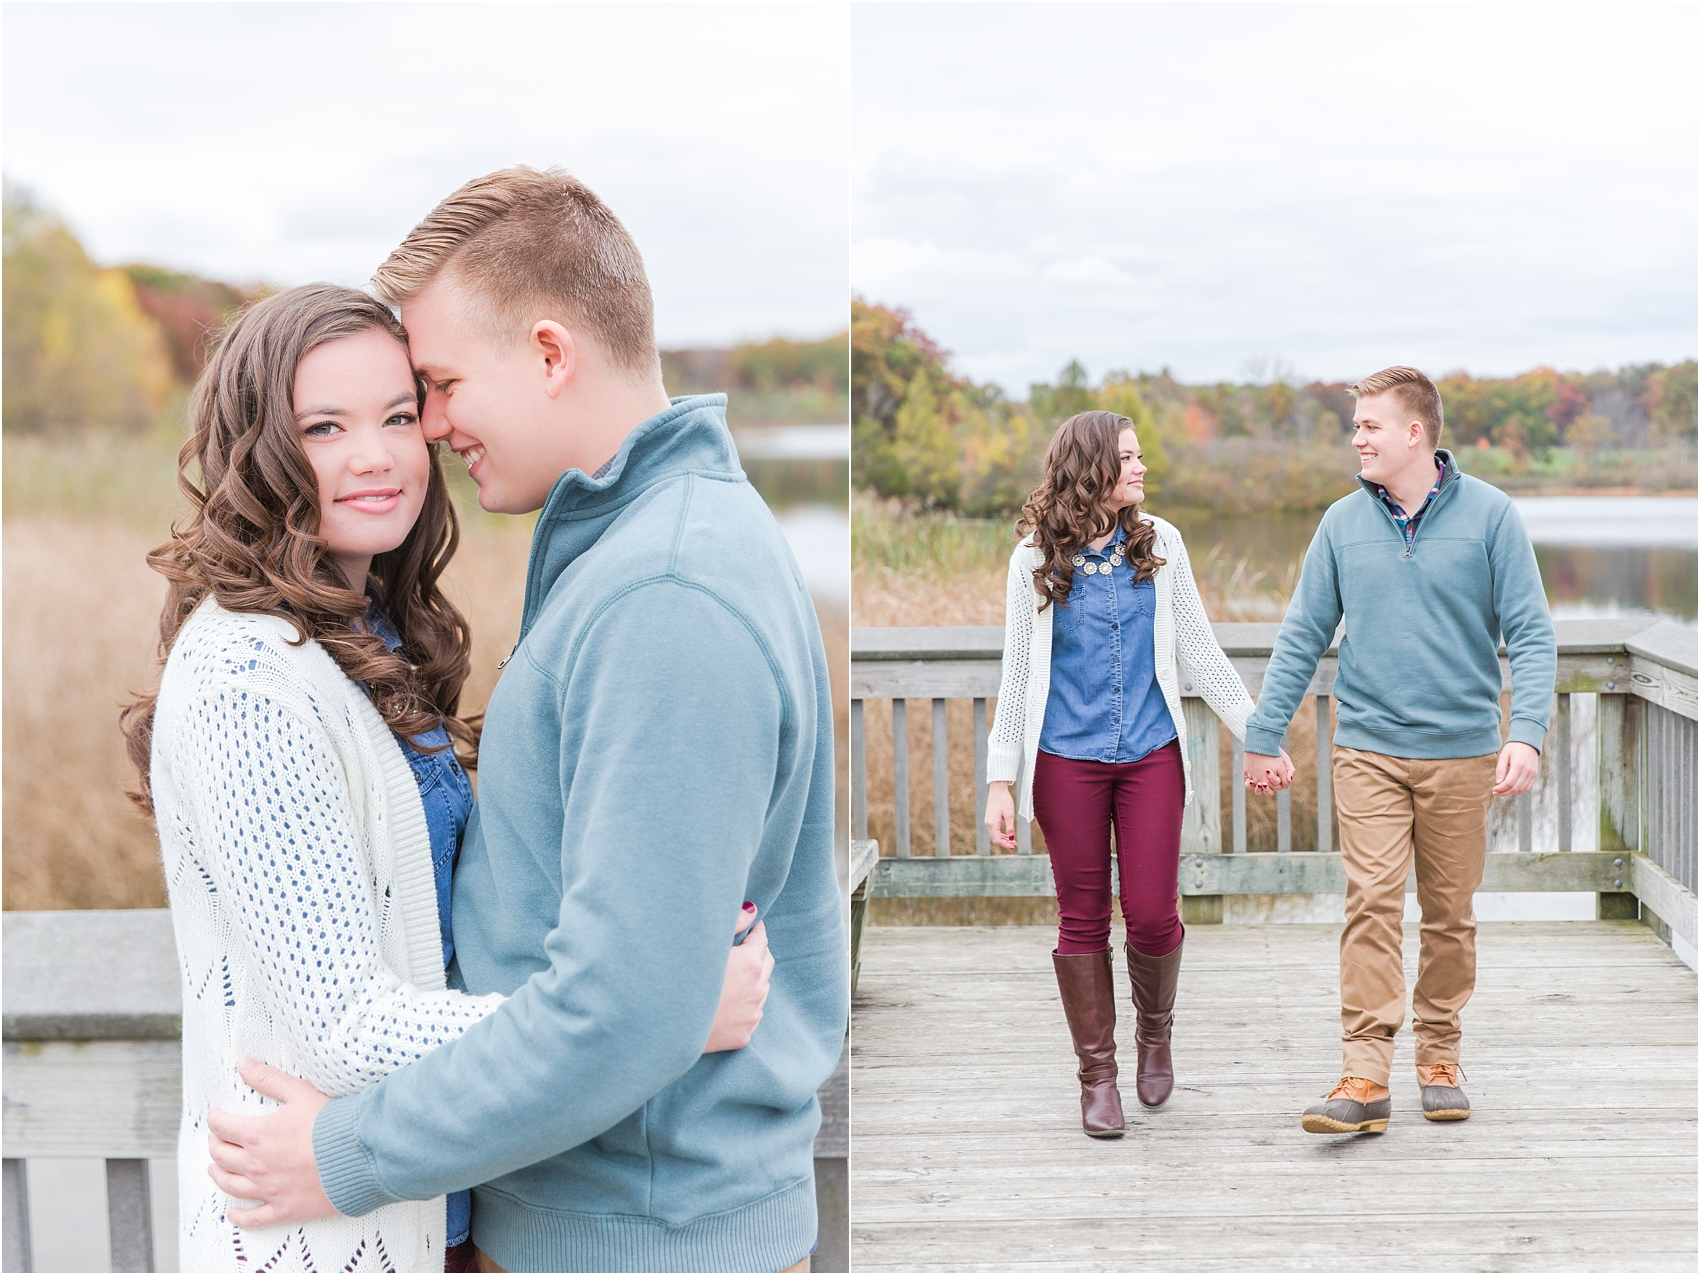 colorful-fall-engagement-photos-at-the-lake-at-huron-meadows-metropark-in-brighton-michigan-by-courtney-carolyn-photography_0004.jpg